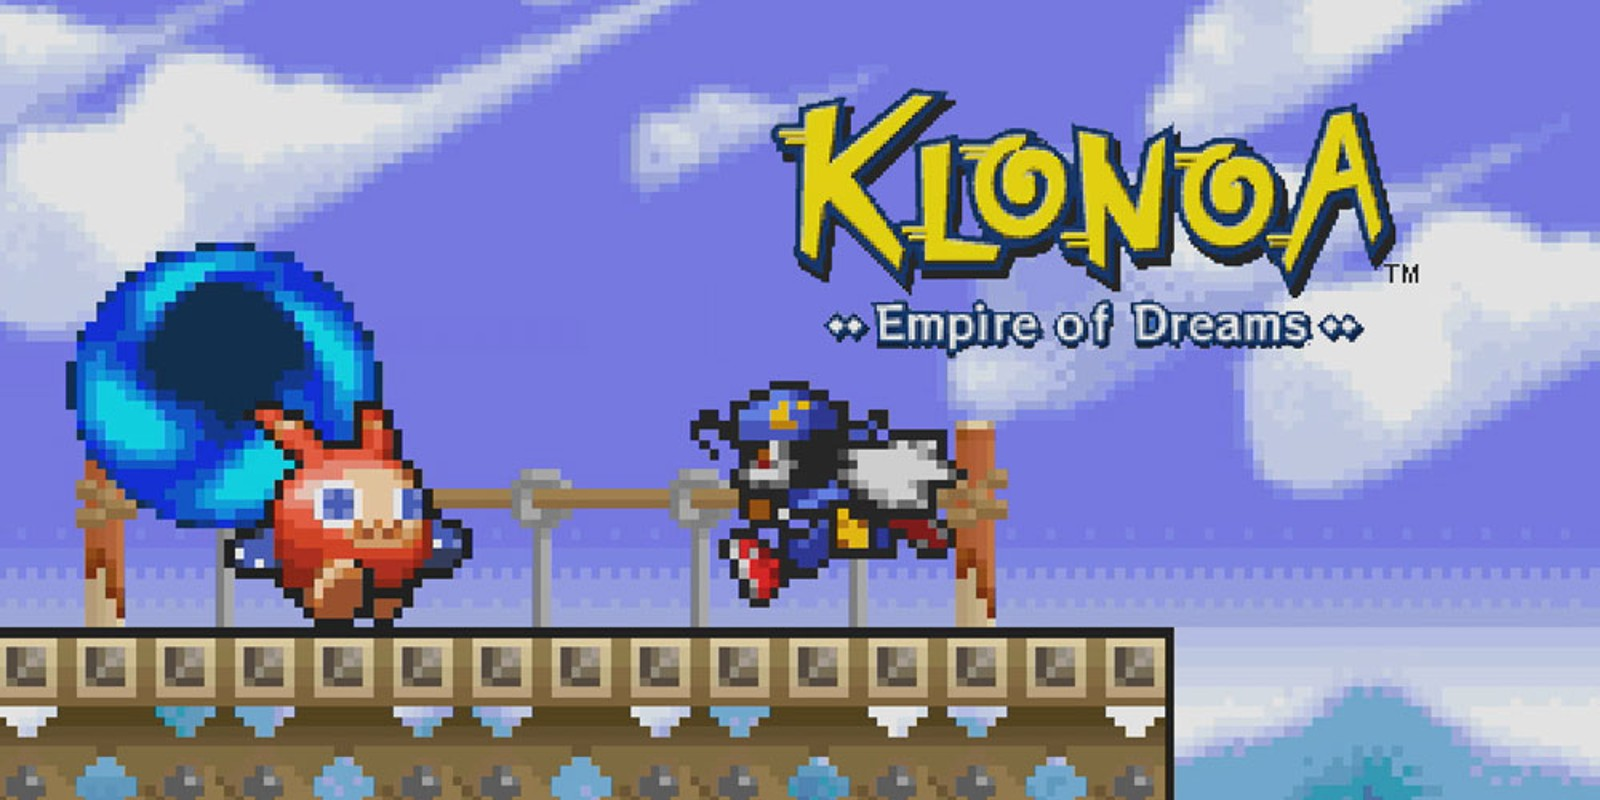 Klonoa™: Empire of Dreams